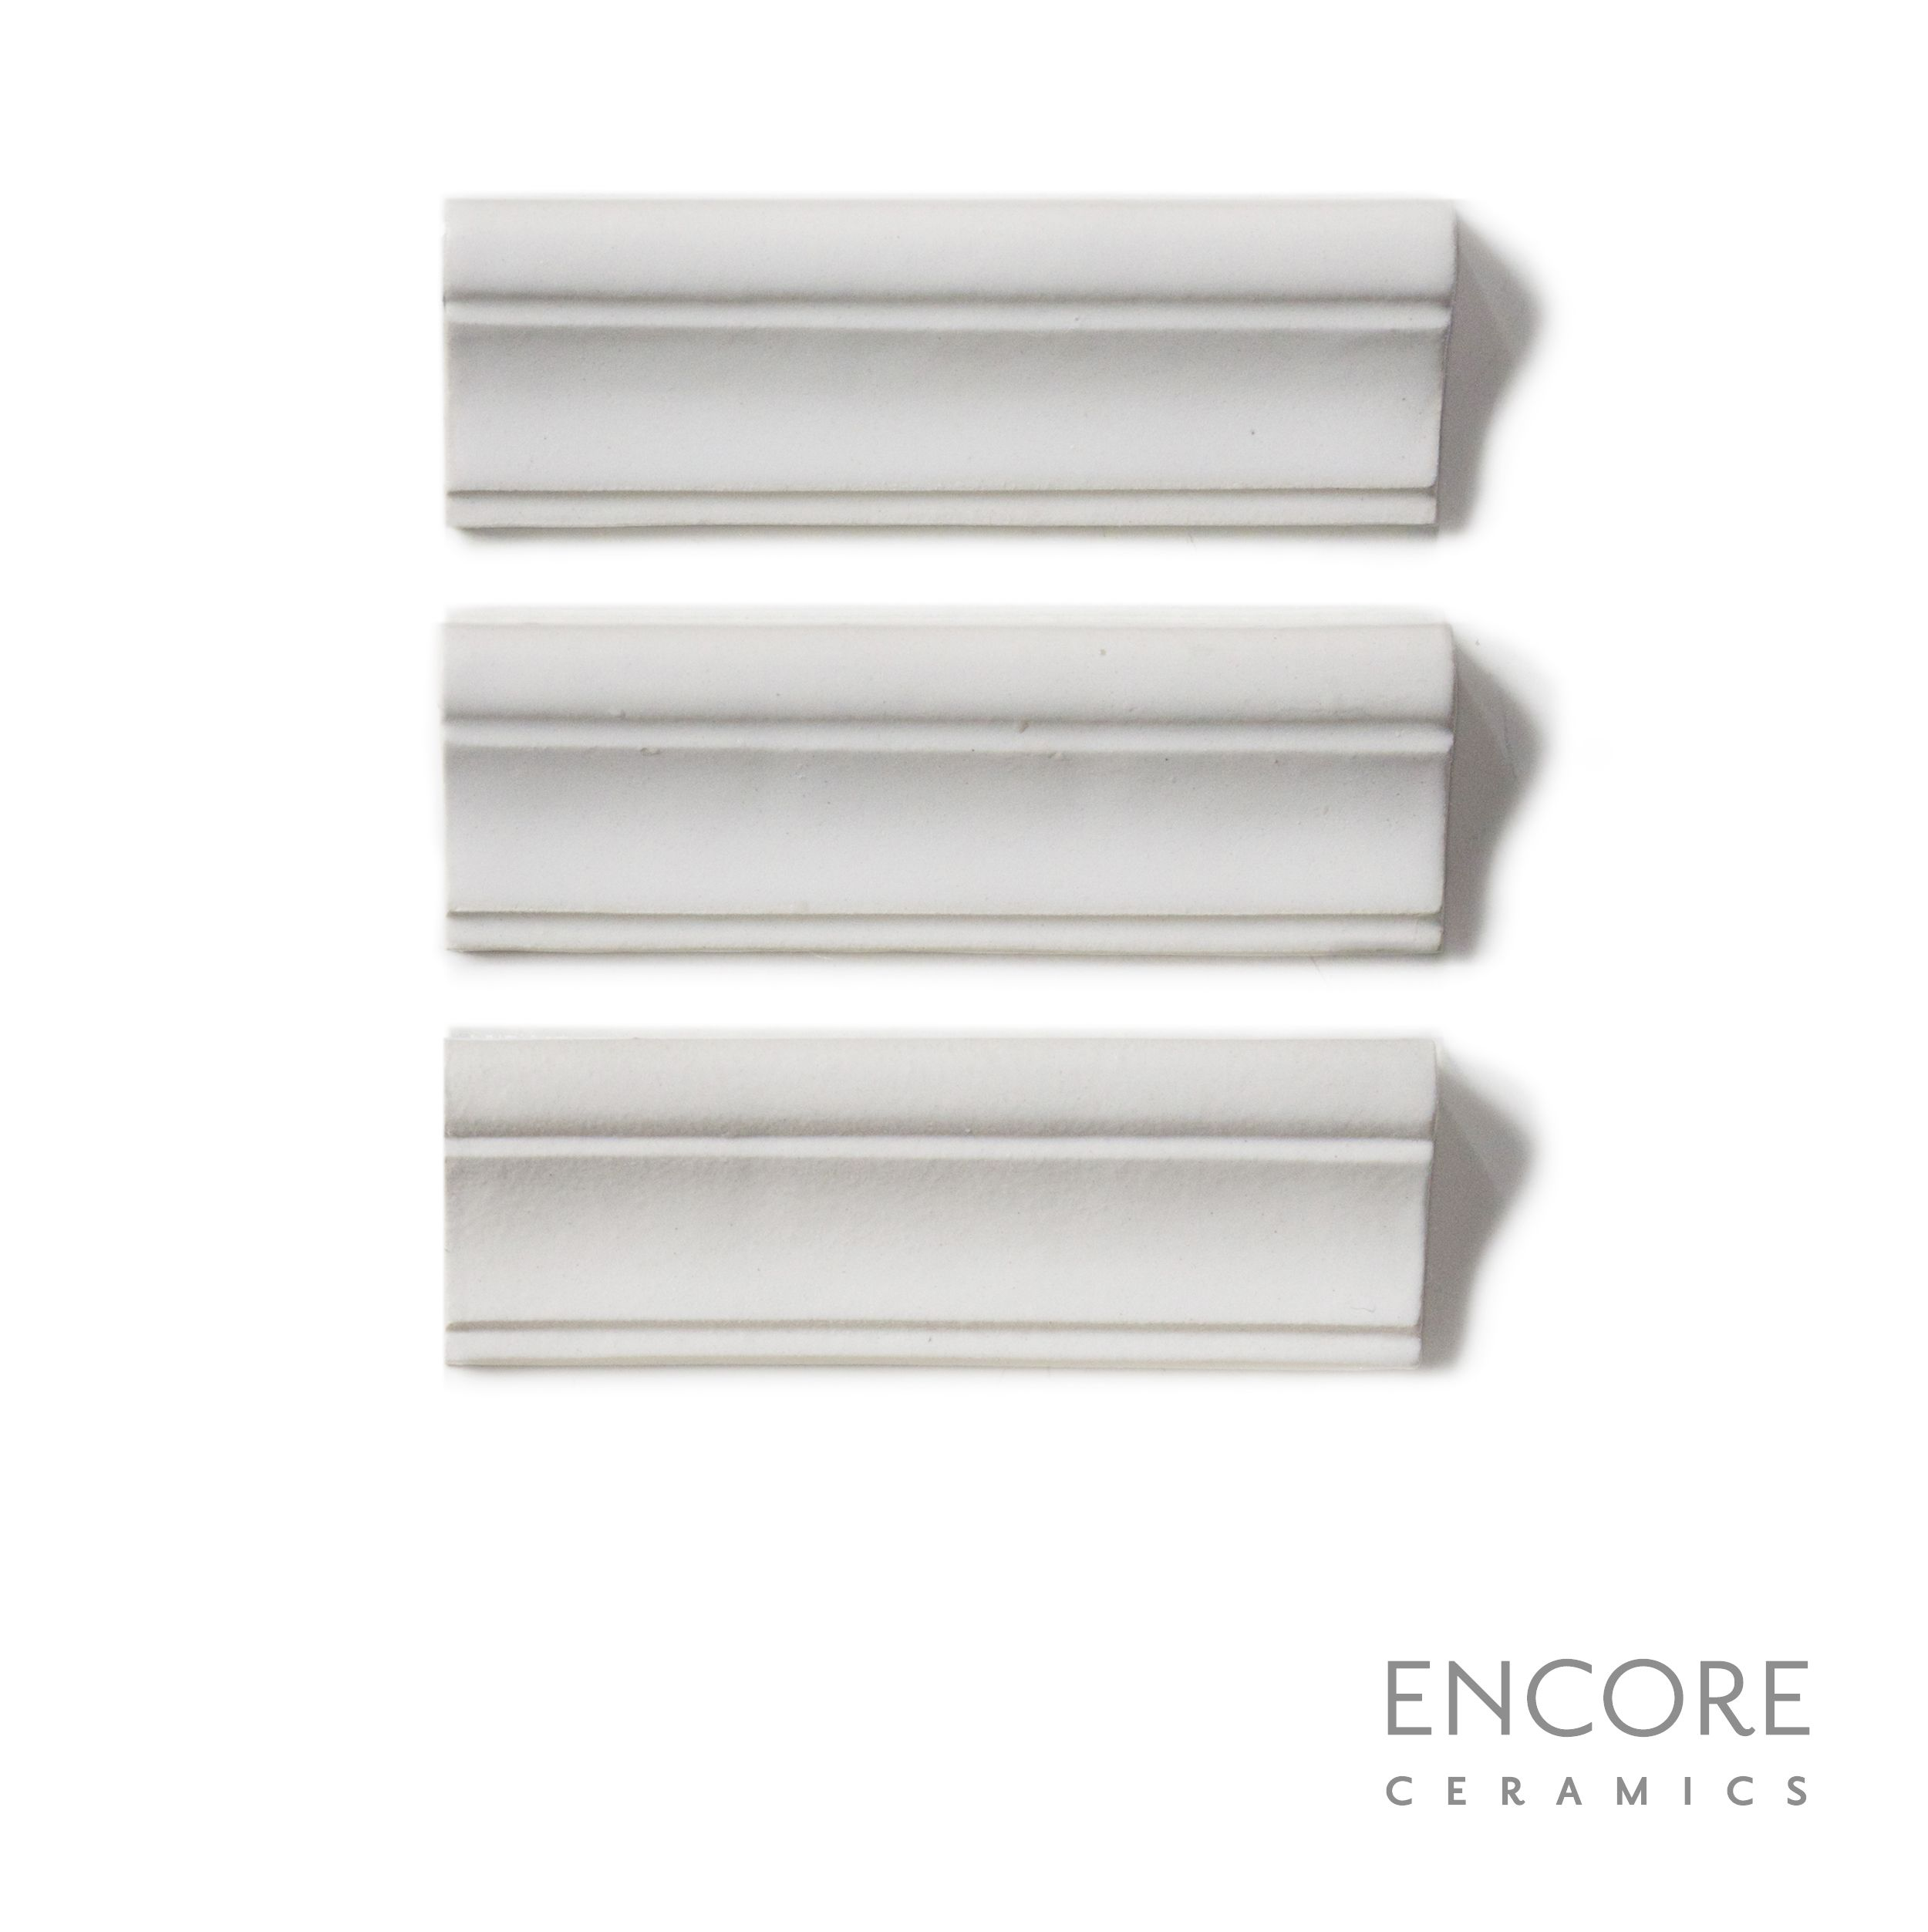 Encore Ceramics | Essence molding hand-glazed in Bianca matte | Sustainably made in Oregon